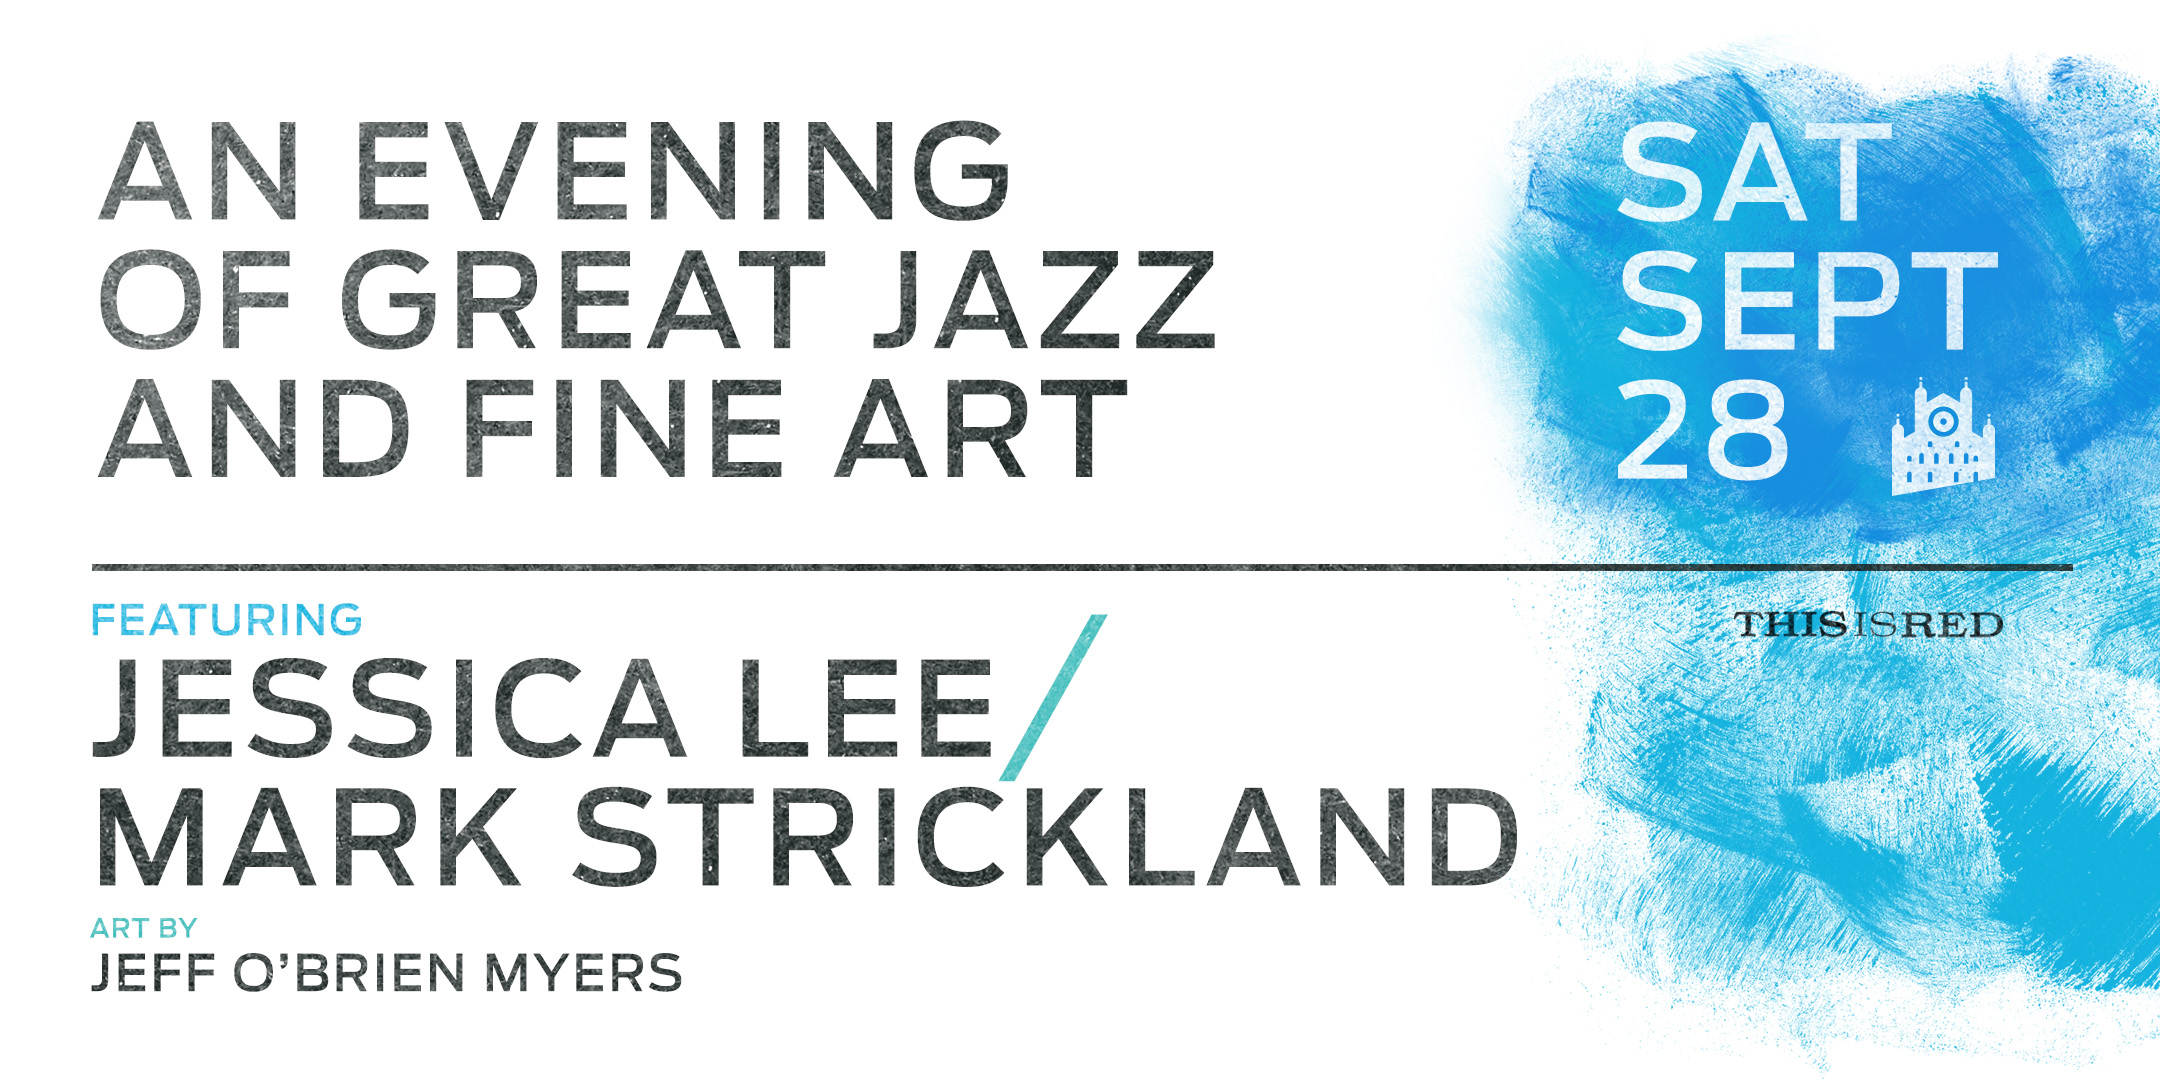 An evening of great jazz and fine art - Saturday september 28 6:30-9:30PM